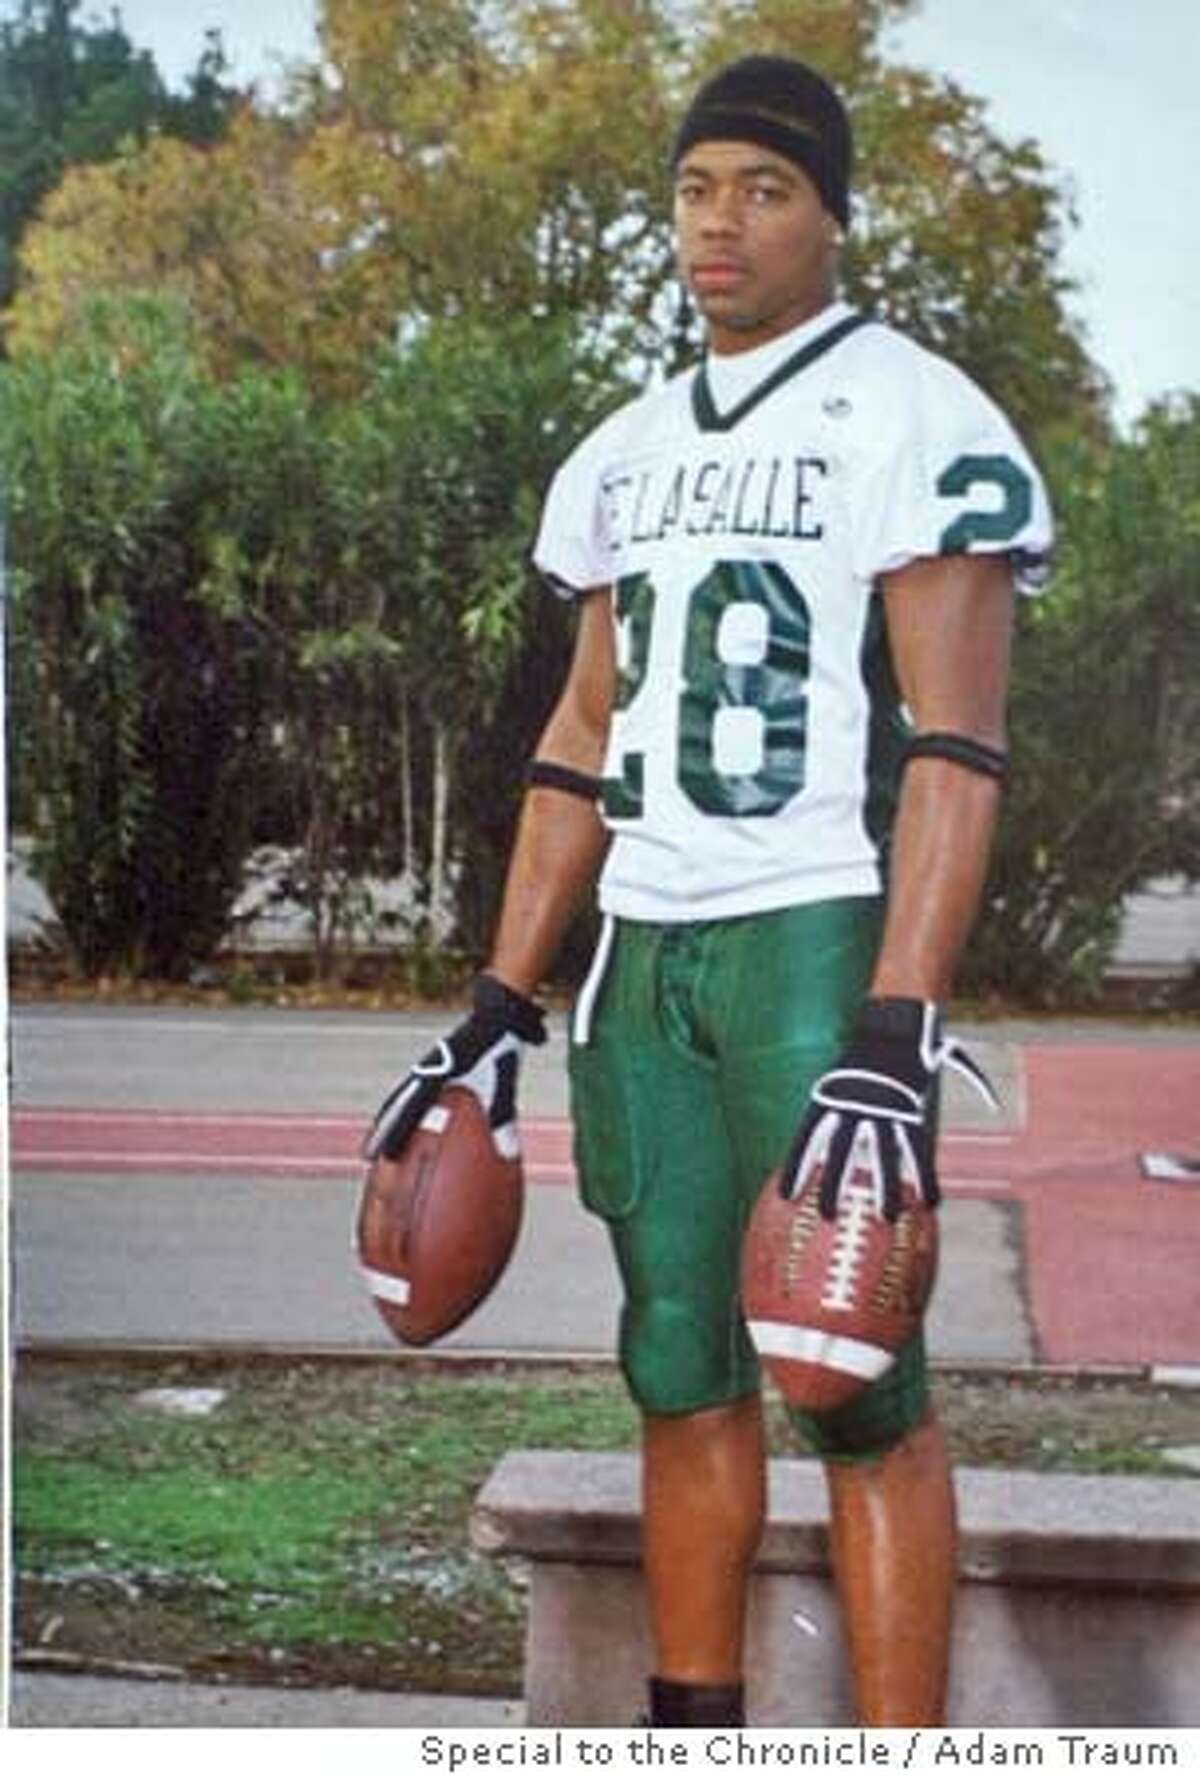 {060404_oakslay05_ckh) Copy photo of De LaSalle football star Terrance Kelly in his high school uniform. Richmond Police have already arrested the 18 year old Larry Pratcher of Richmond in the slaying of De LaSalle football star Terrance Kelly {08/16/04} in {Richmond}. {Adam Traum} / {SF CHRONICLE} MANDATORY CREDIT FOR PHOTOG AND SF CHRONICLE/ -MAGS OUT